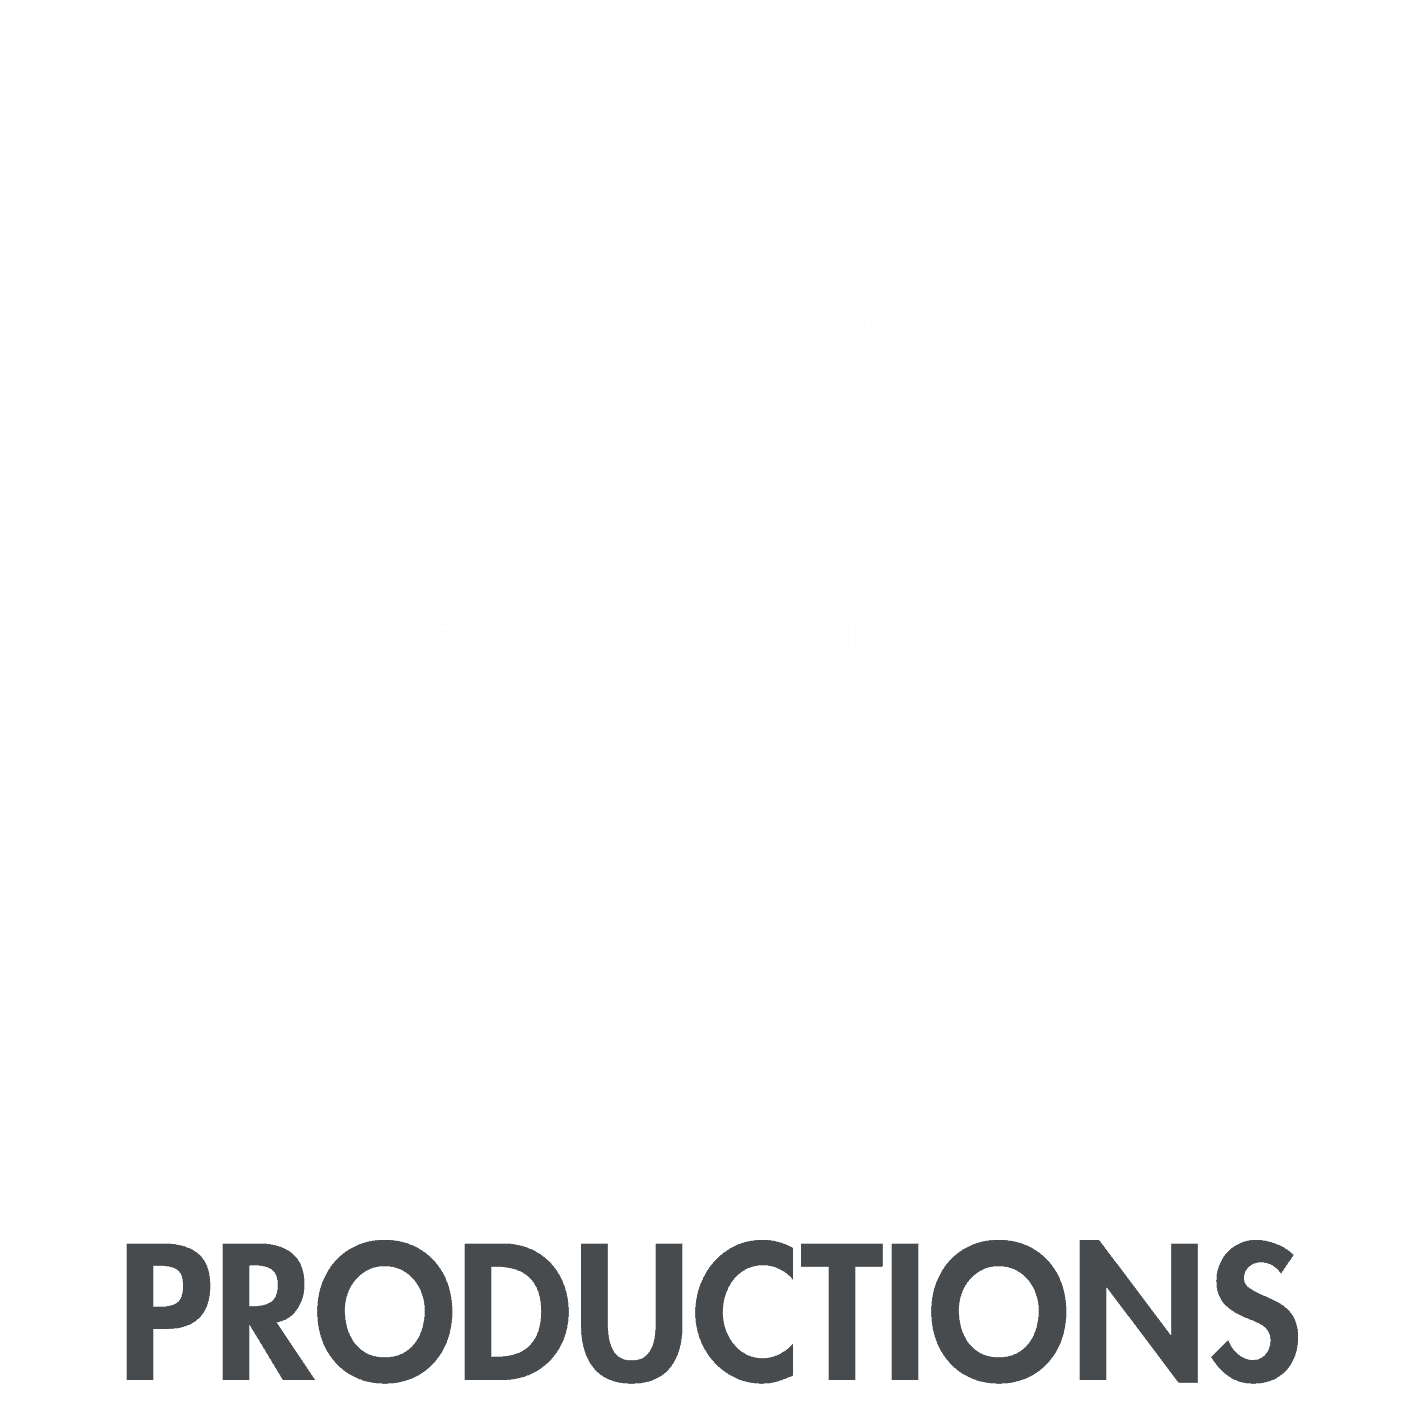 Bear Beat Productions